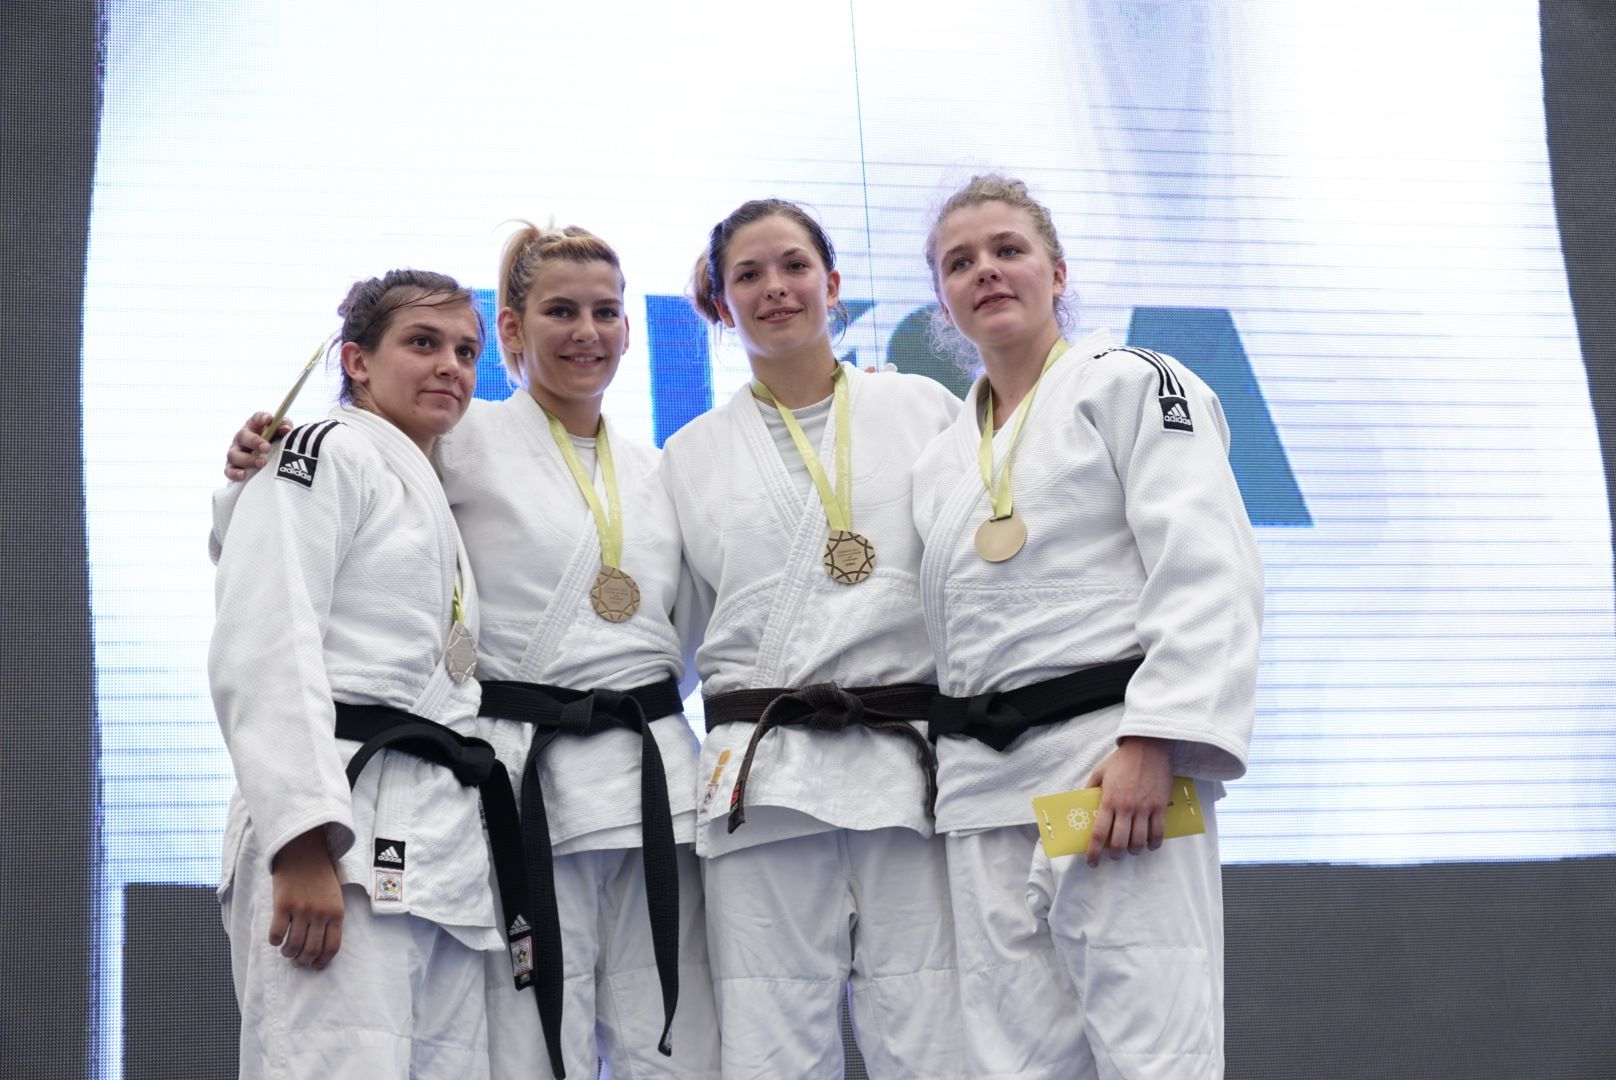 EUSA Coimbra Medalists 2017 Group